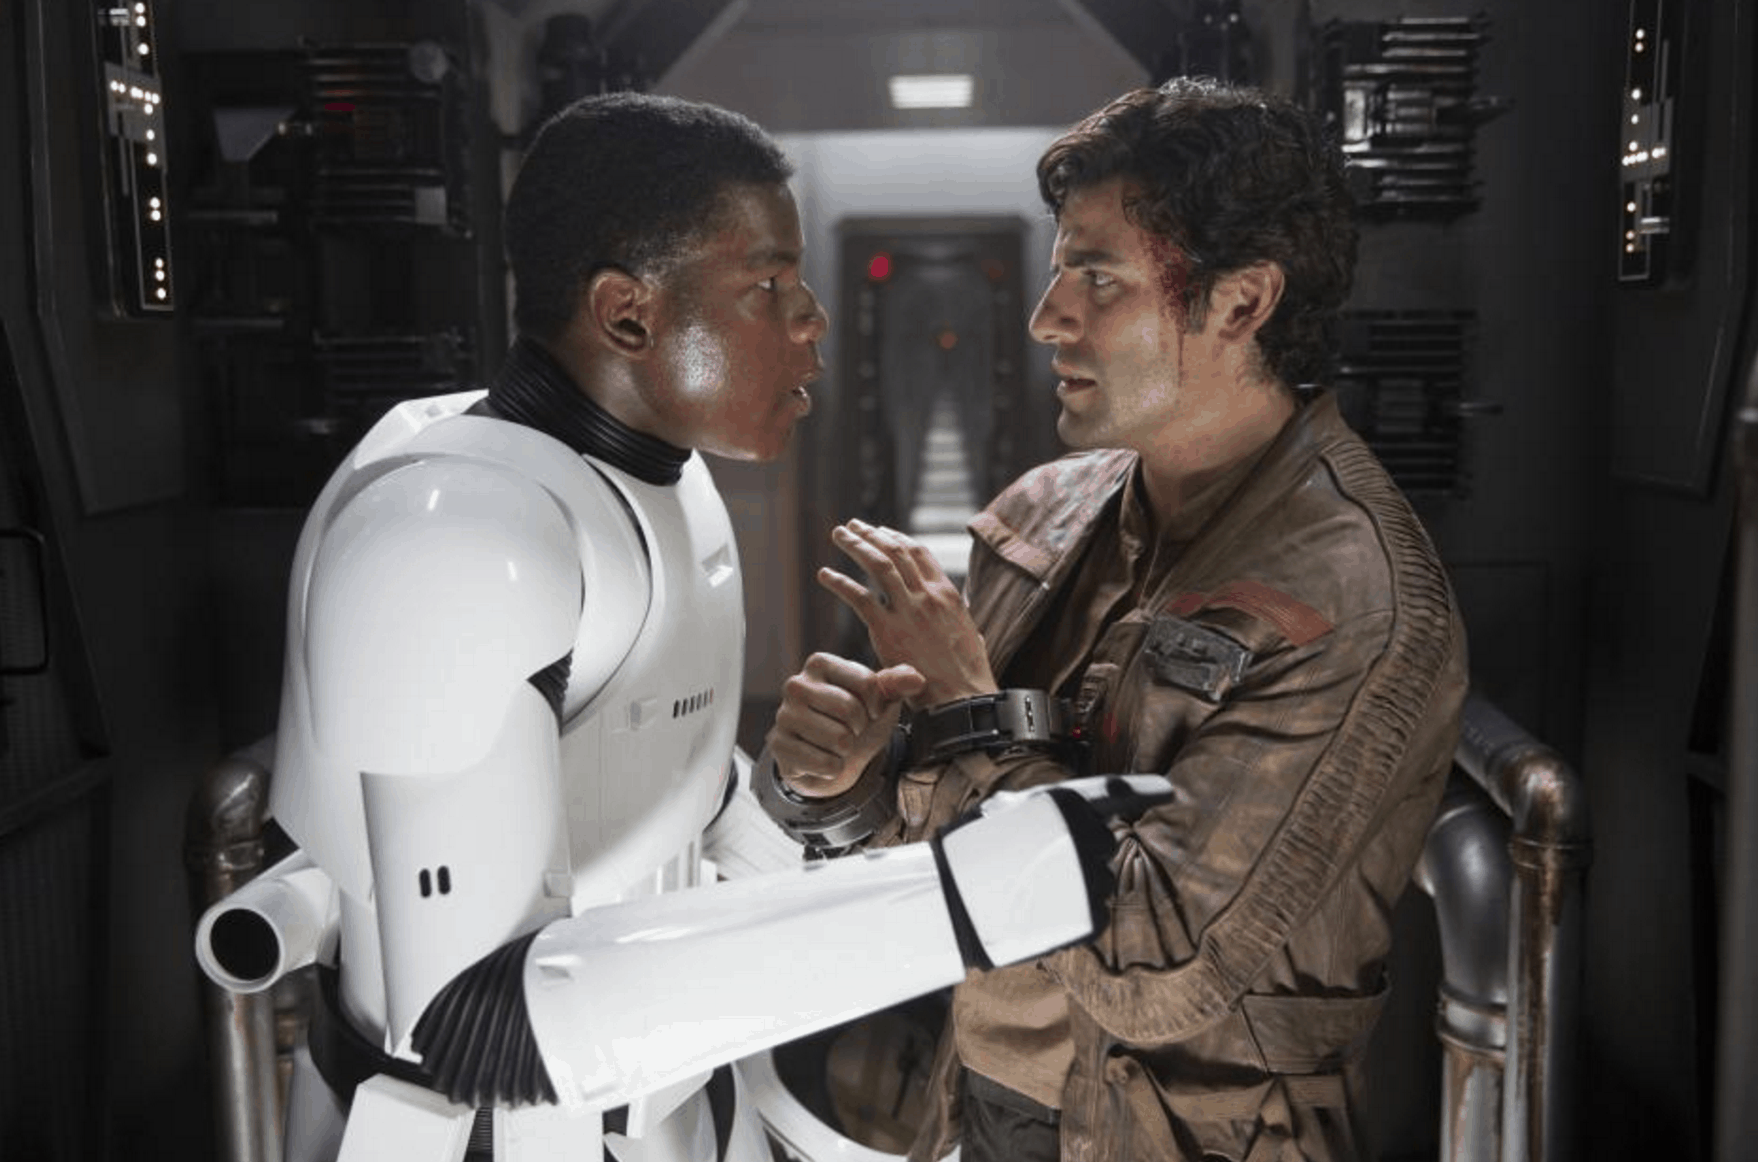 Poe Dameron Quotes from Star Wars: The Force Awakens